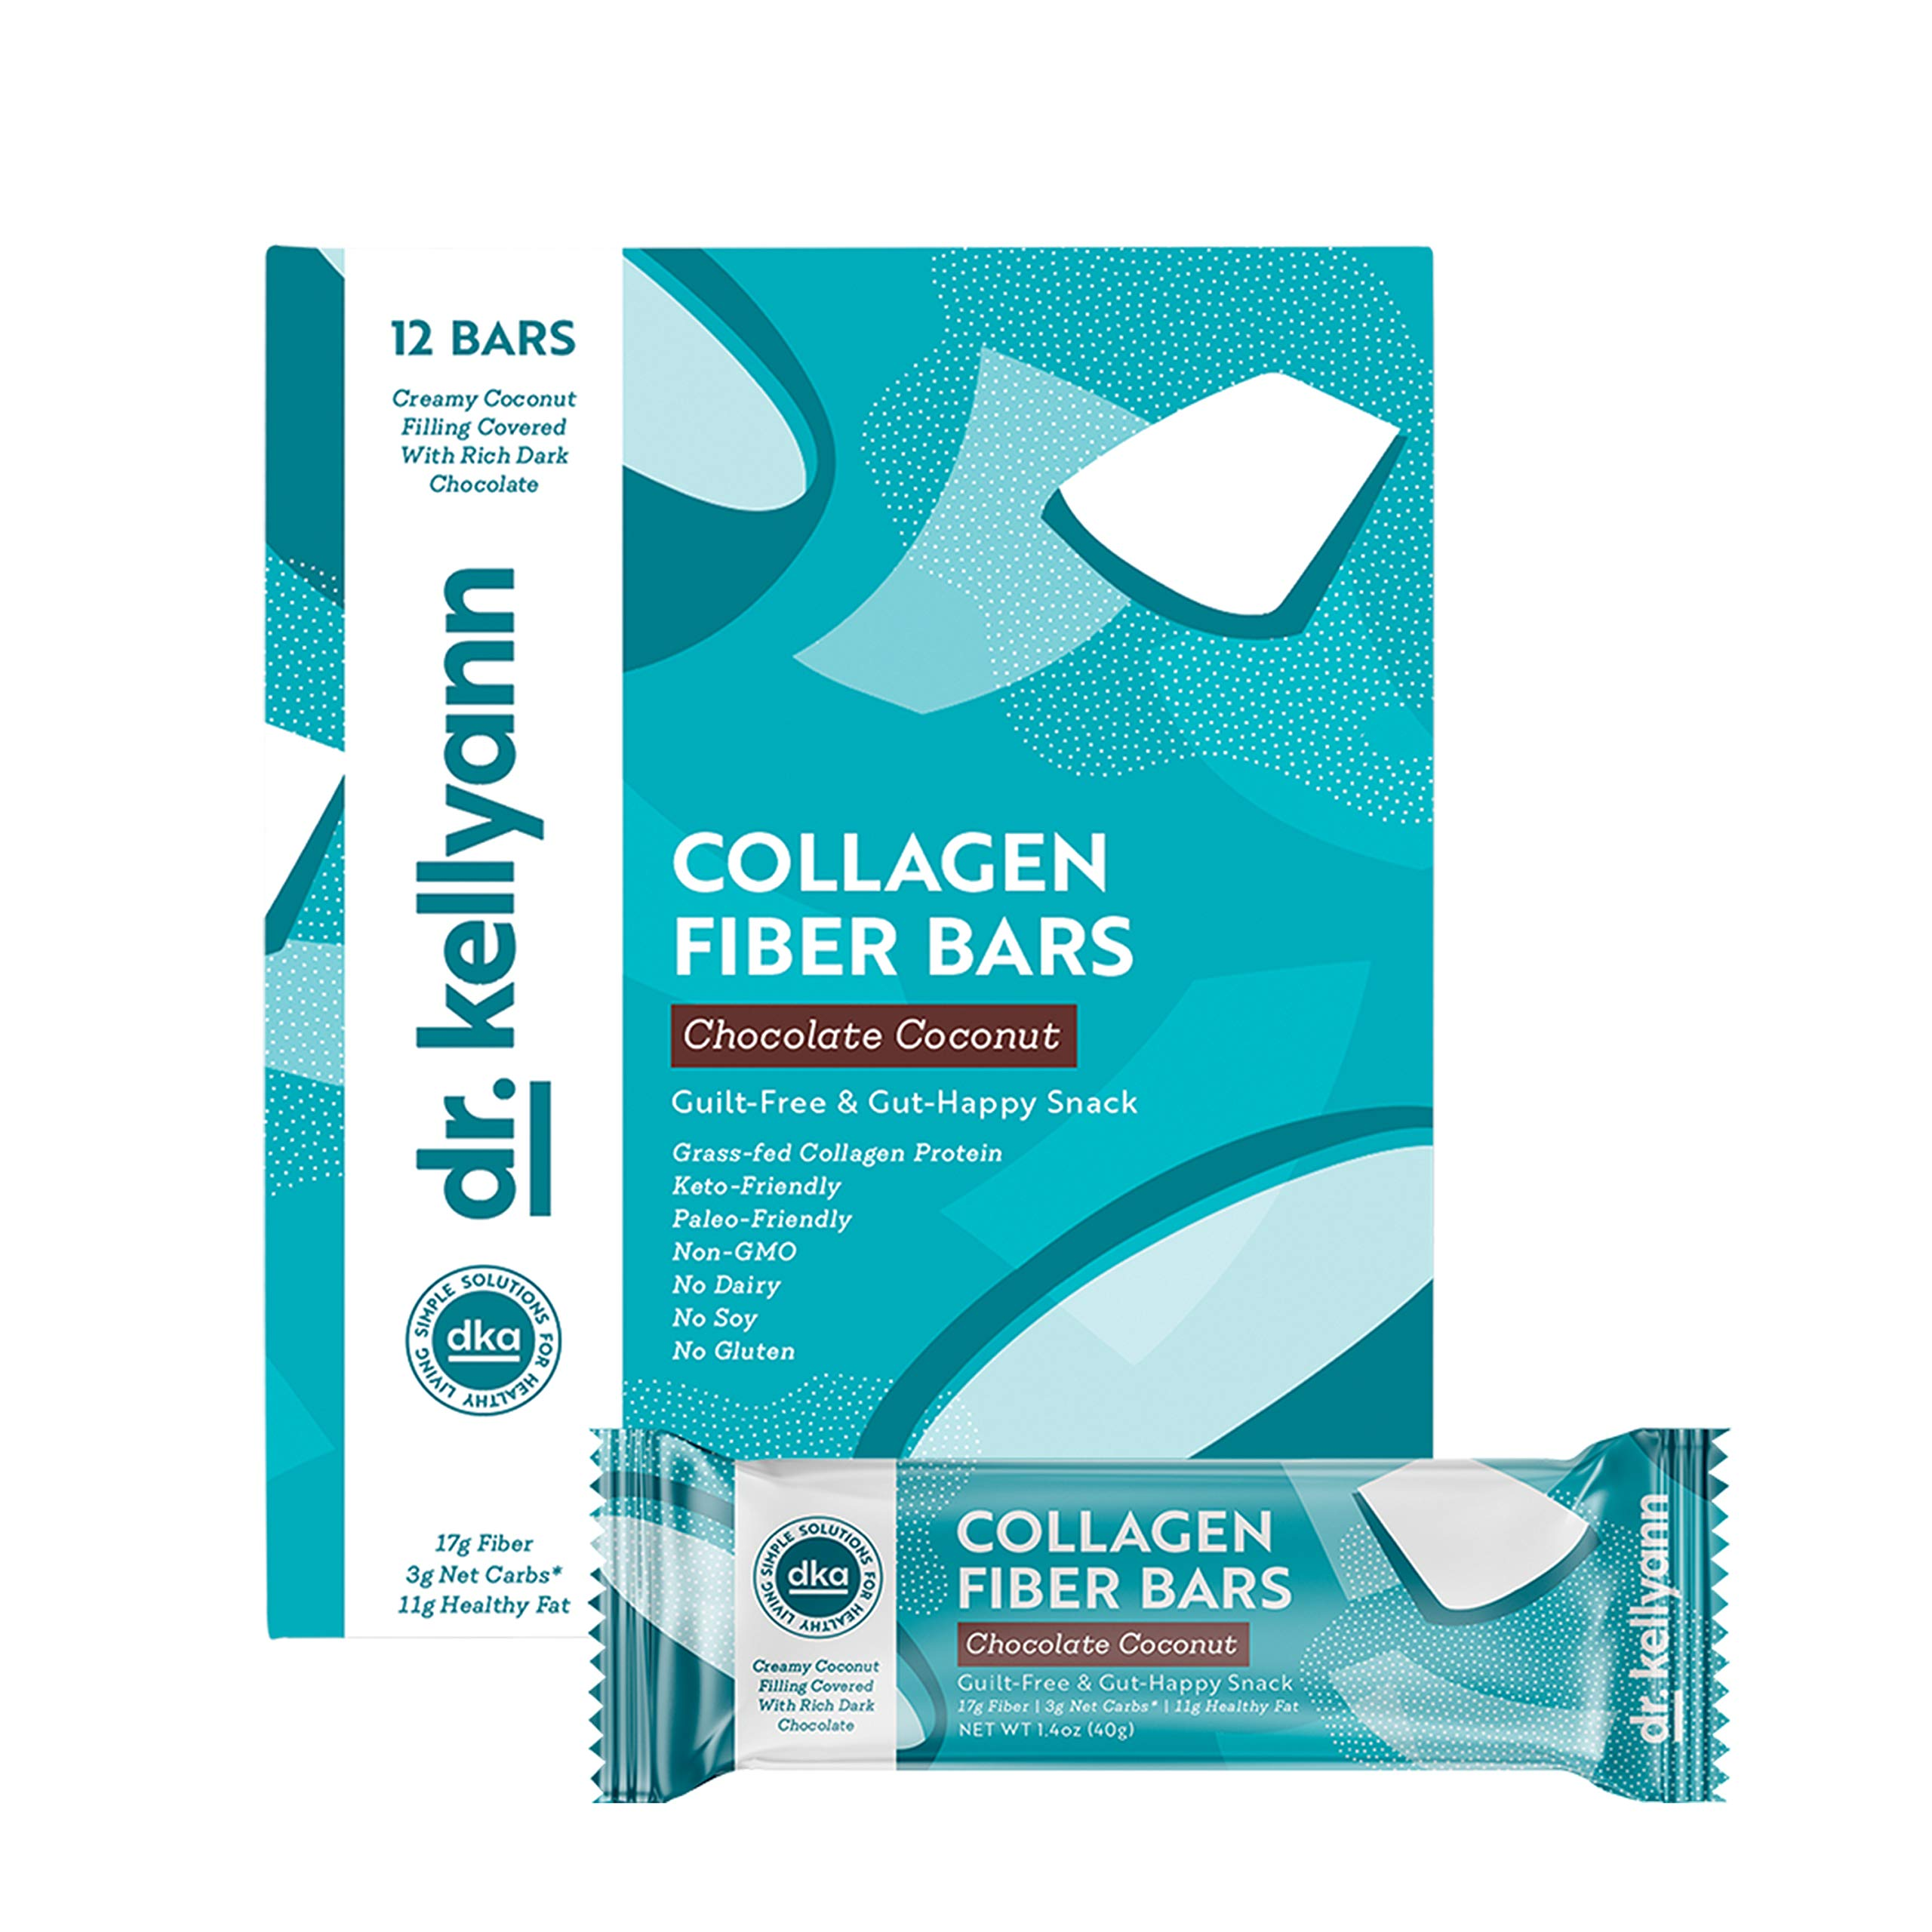 Keto Collagen Fiber Bar - High Fiber, Low Carbs - Dairy Free, Soy Free, Gluten Free, Non-GMO & No Added Sugar - Perfect Keto & Paleo Snack with Creamy Coconut Inside Dipped in Dark Chocolate (12 bars) by Dr. Kellyann (Image #4)